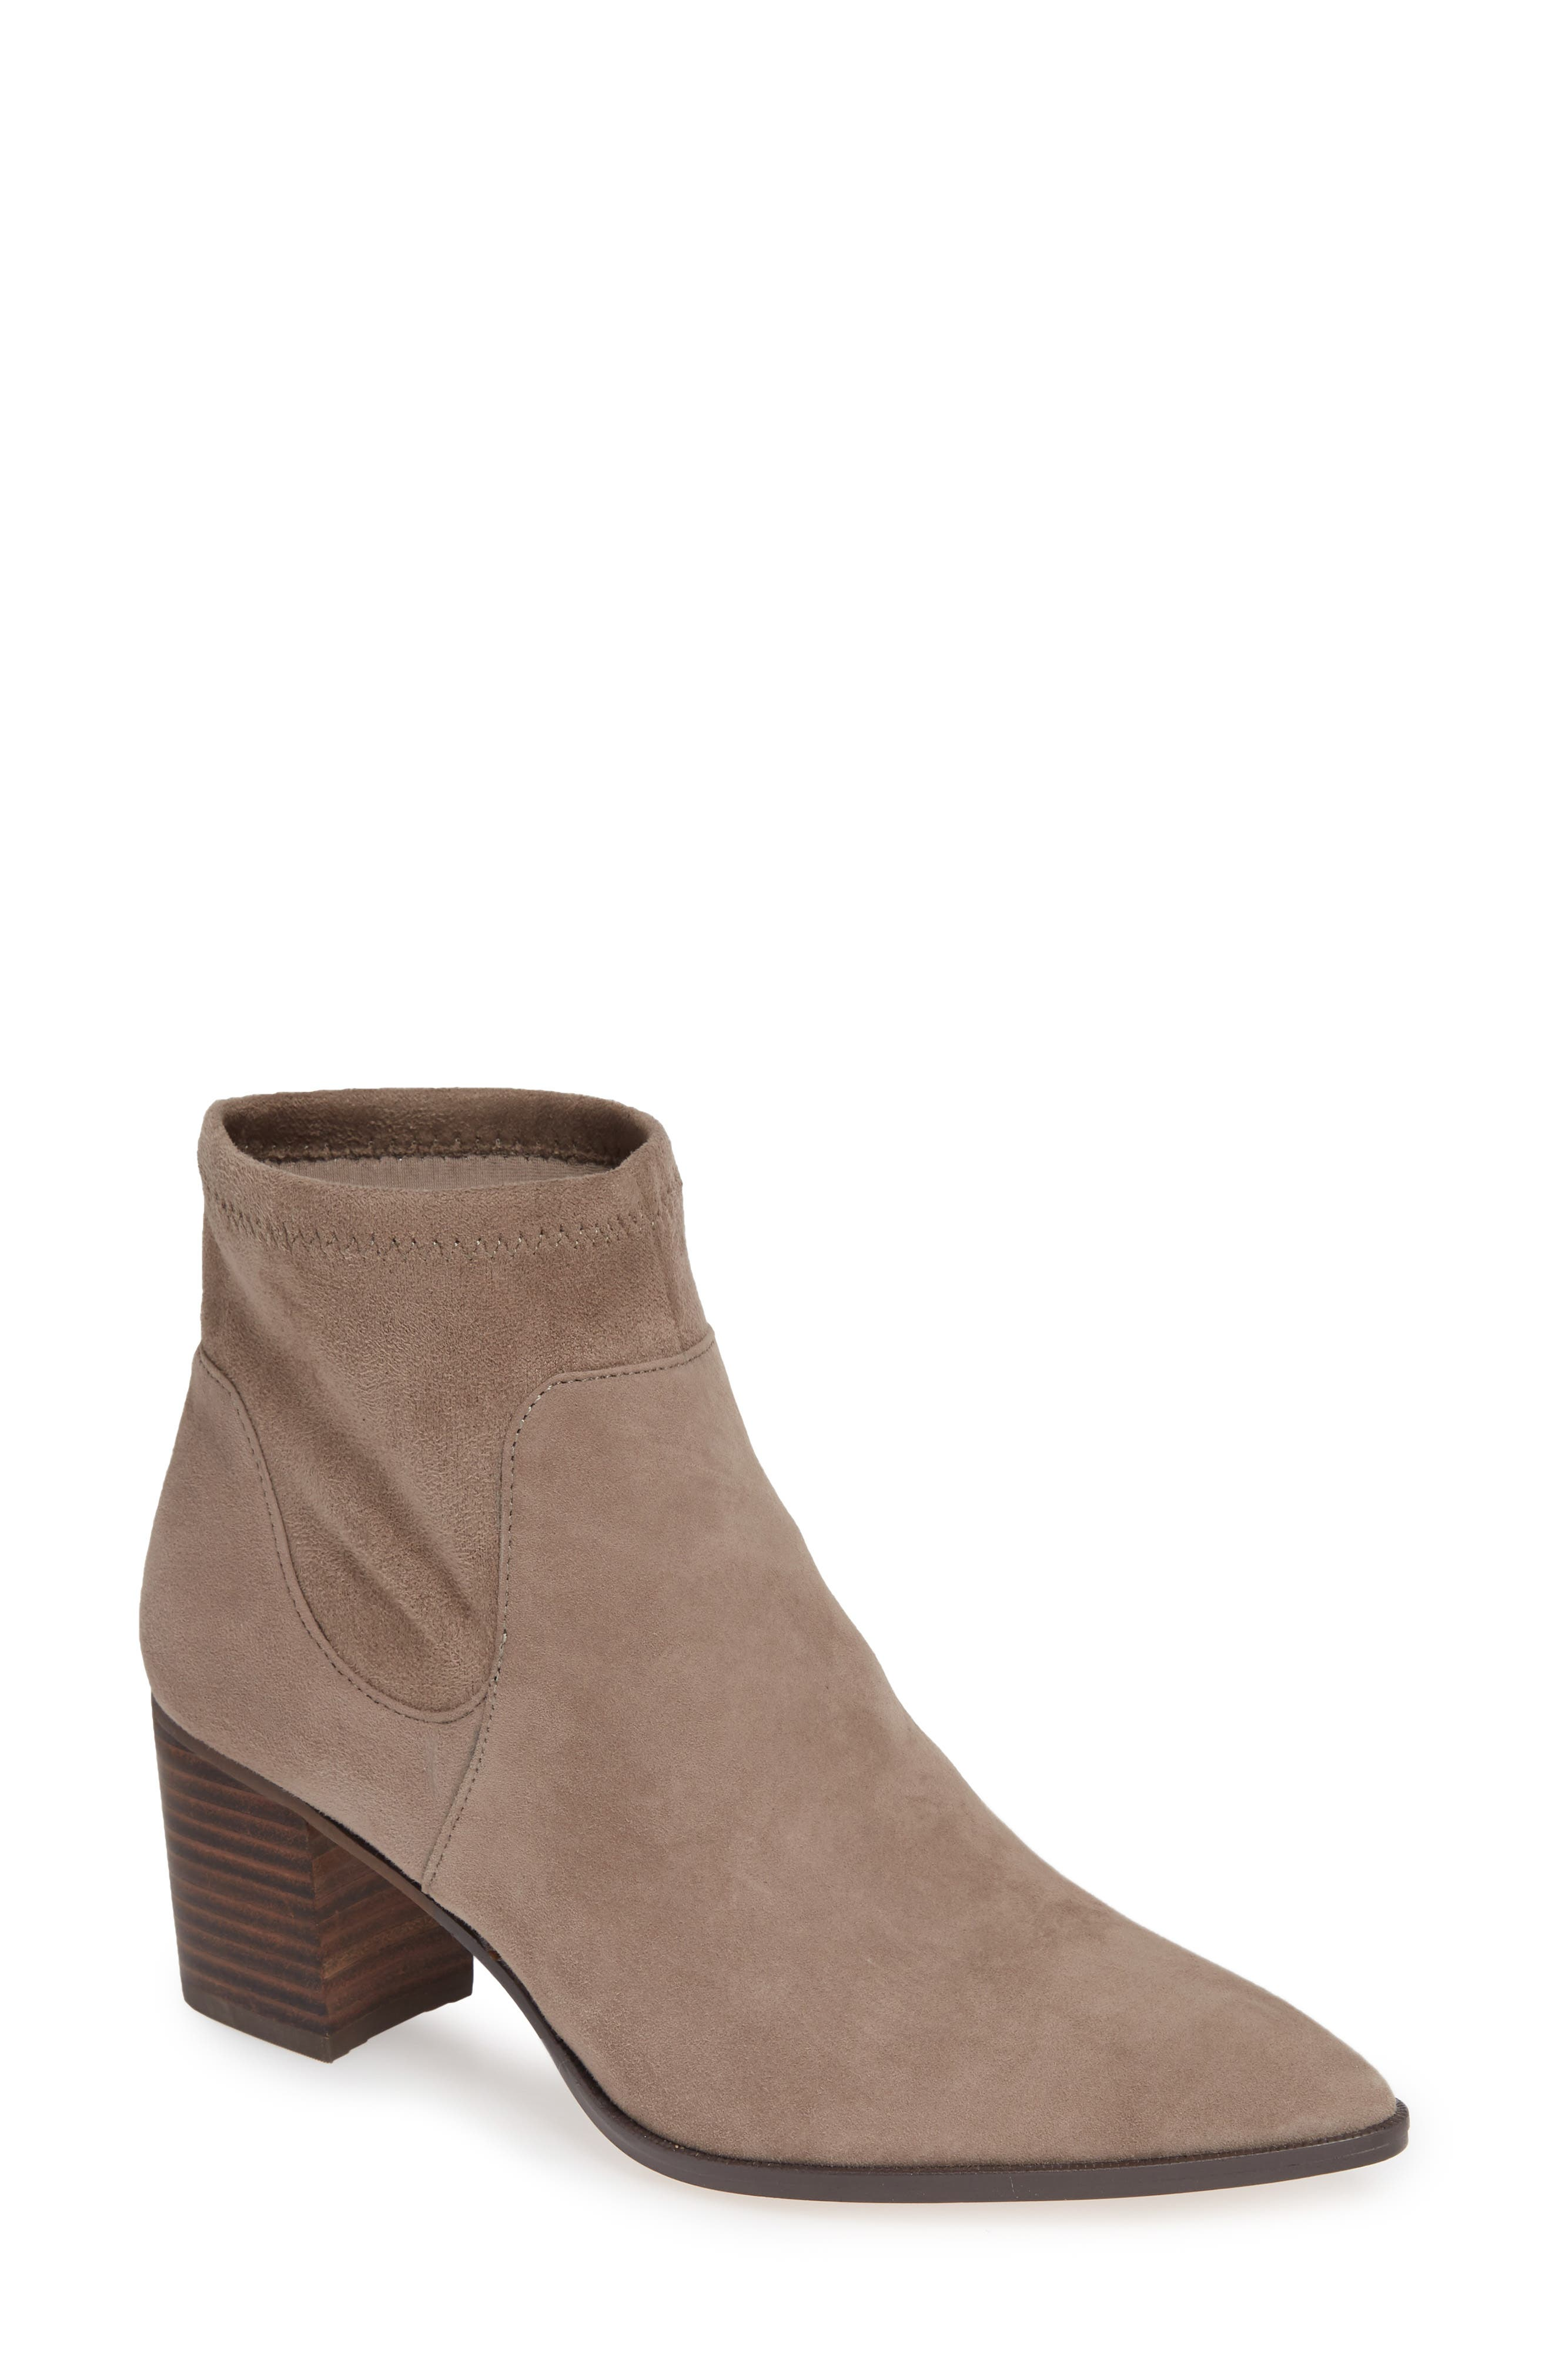 SOLE SOCIETY, Dawnina Bootie, Main thumbnail 1, color, PORCINI SUEDE